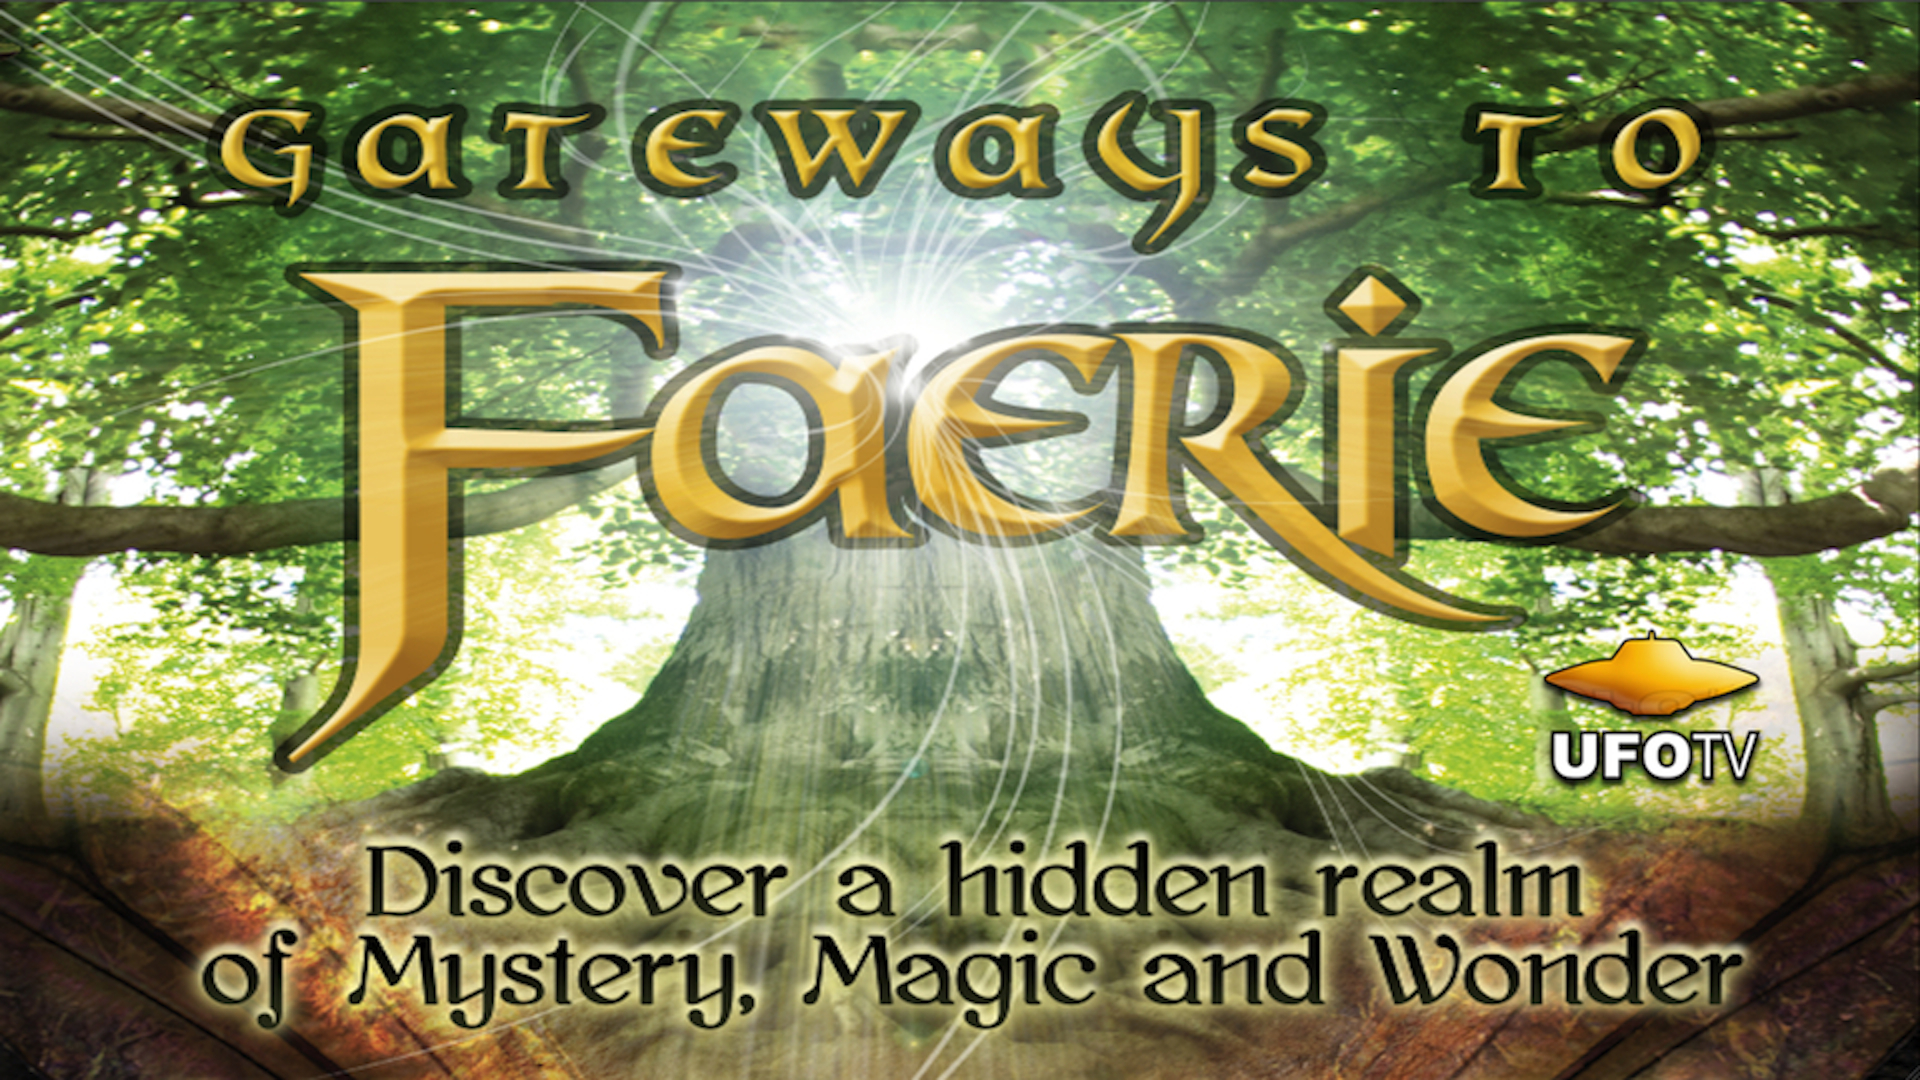 Gateways To Faerie - Discover A Hidden Realm of Mystery, Magic and Wonder